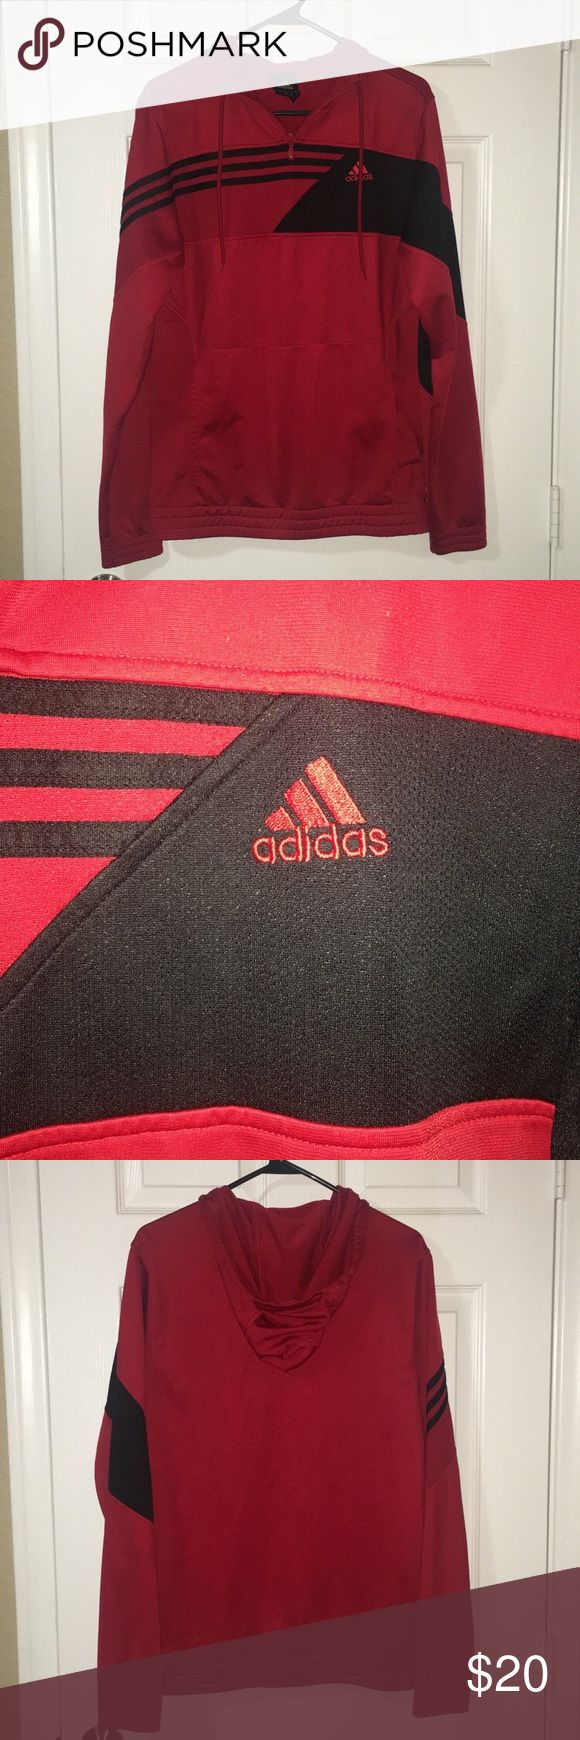 Men's Adidas Sweater with hoodie Men's Red Adidas Pullover, hooded Sweater Size Small Pre-owned and in great condition.   Comes from a pet/smoke free home. adidas Sweaters